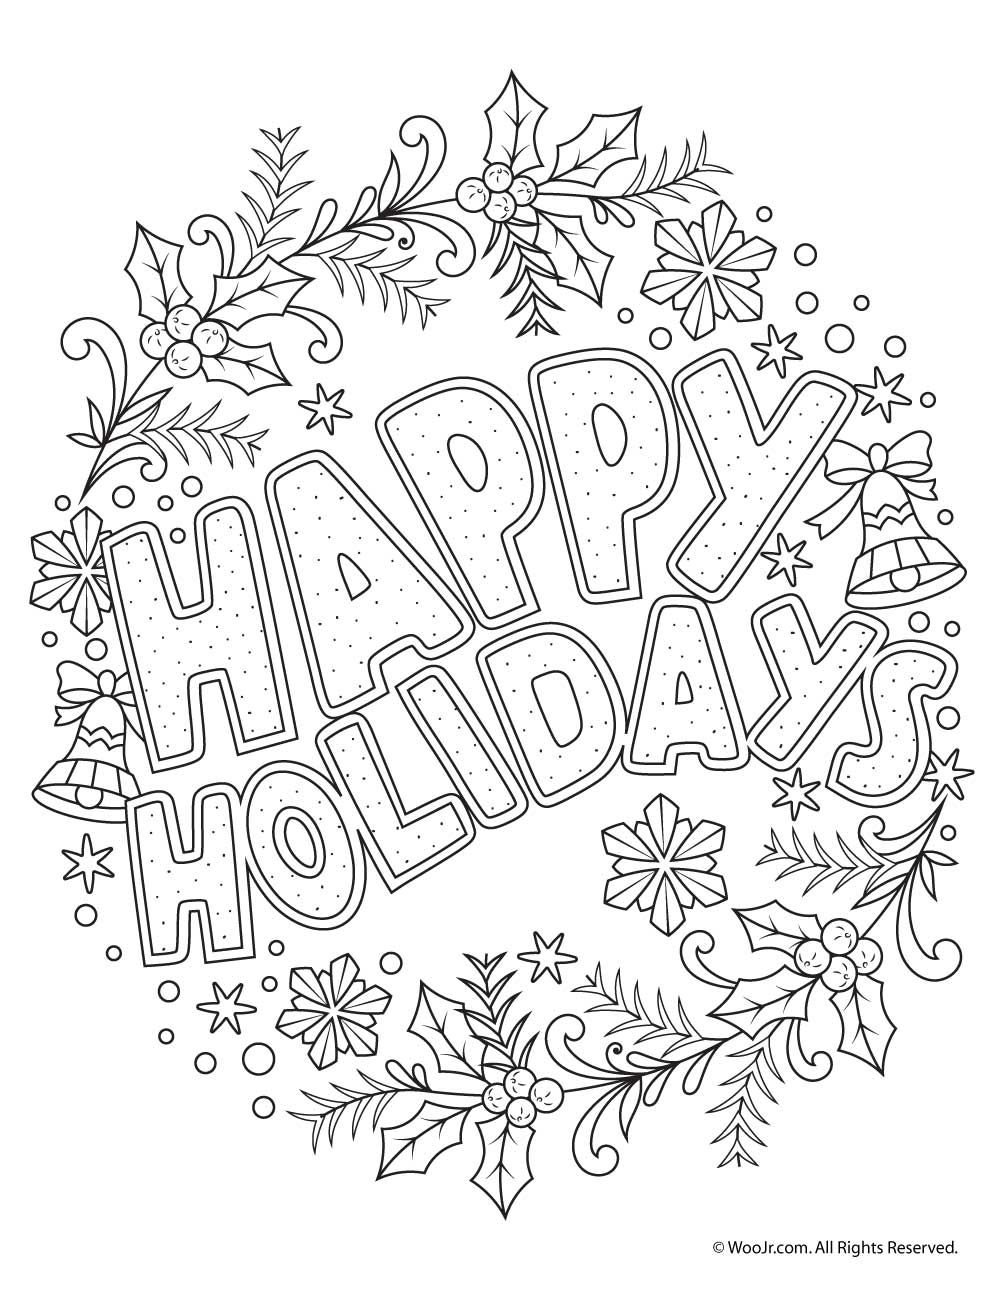 free printable christmas coloring sheets for toddlers beautiful printable christmas adult coloring pages sheets christmas toddlers for printable free coloring